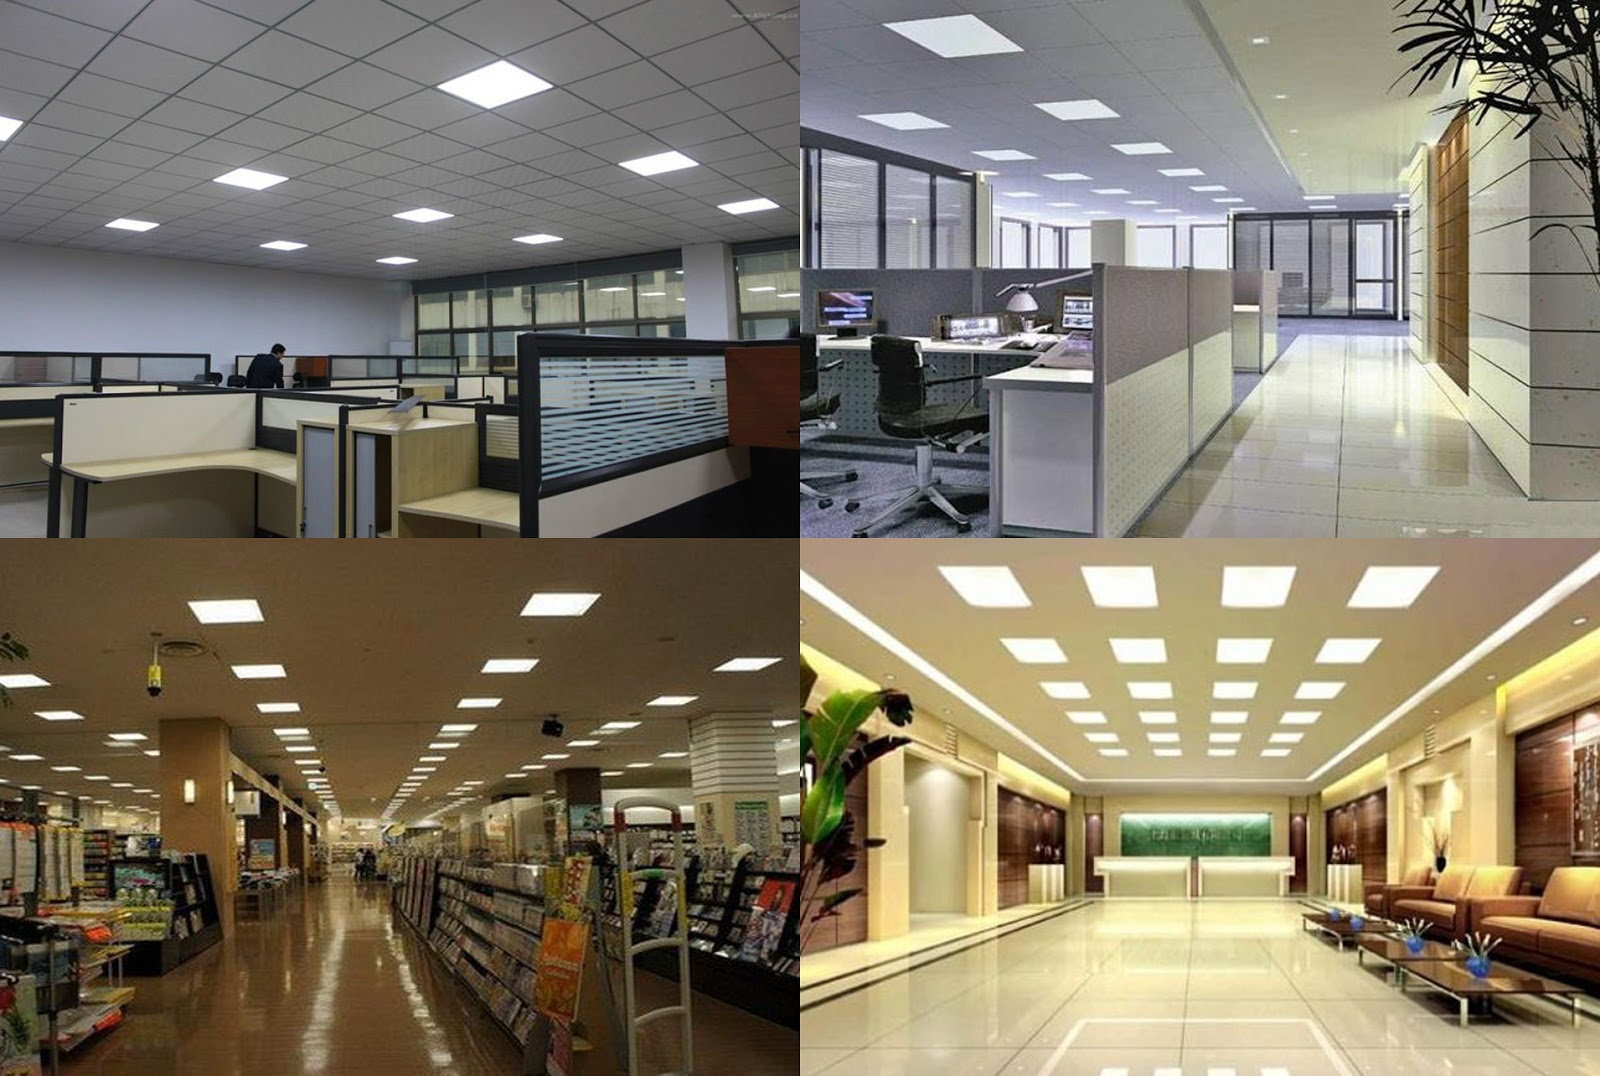 How green is is led lighting guardian services plus qualified led lighting produces virtually no heat and provides optimal light color for any environment from parking lots to high end show rooms aloadofball Gallery